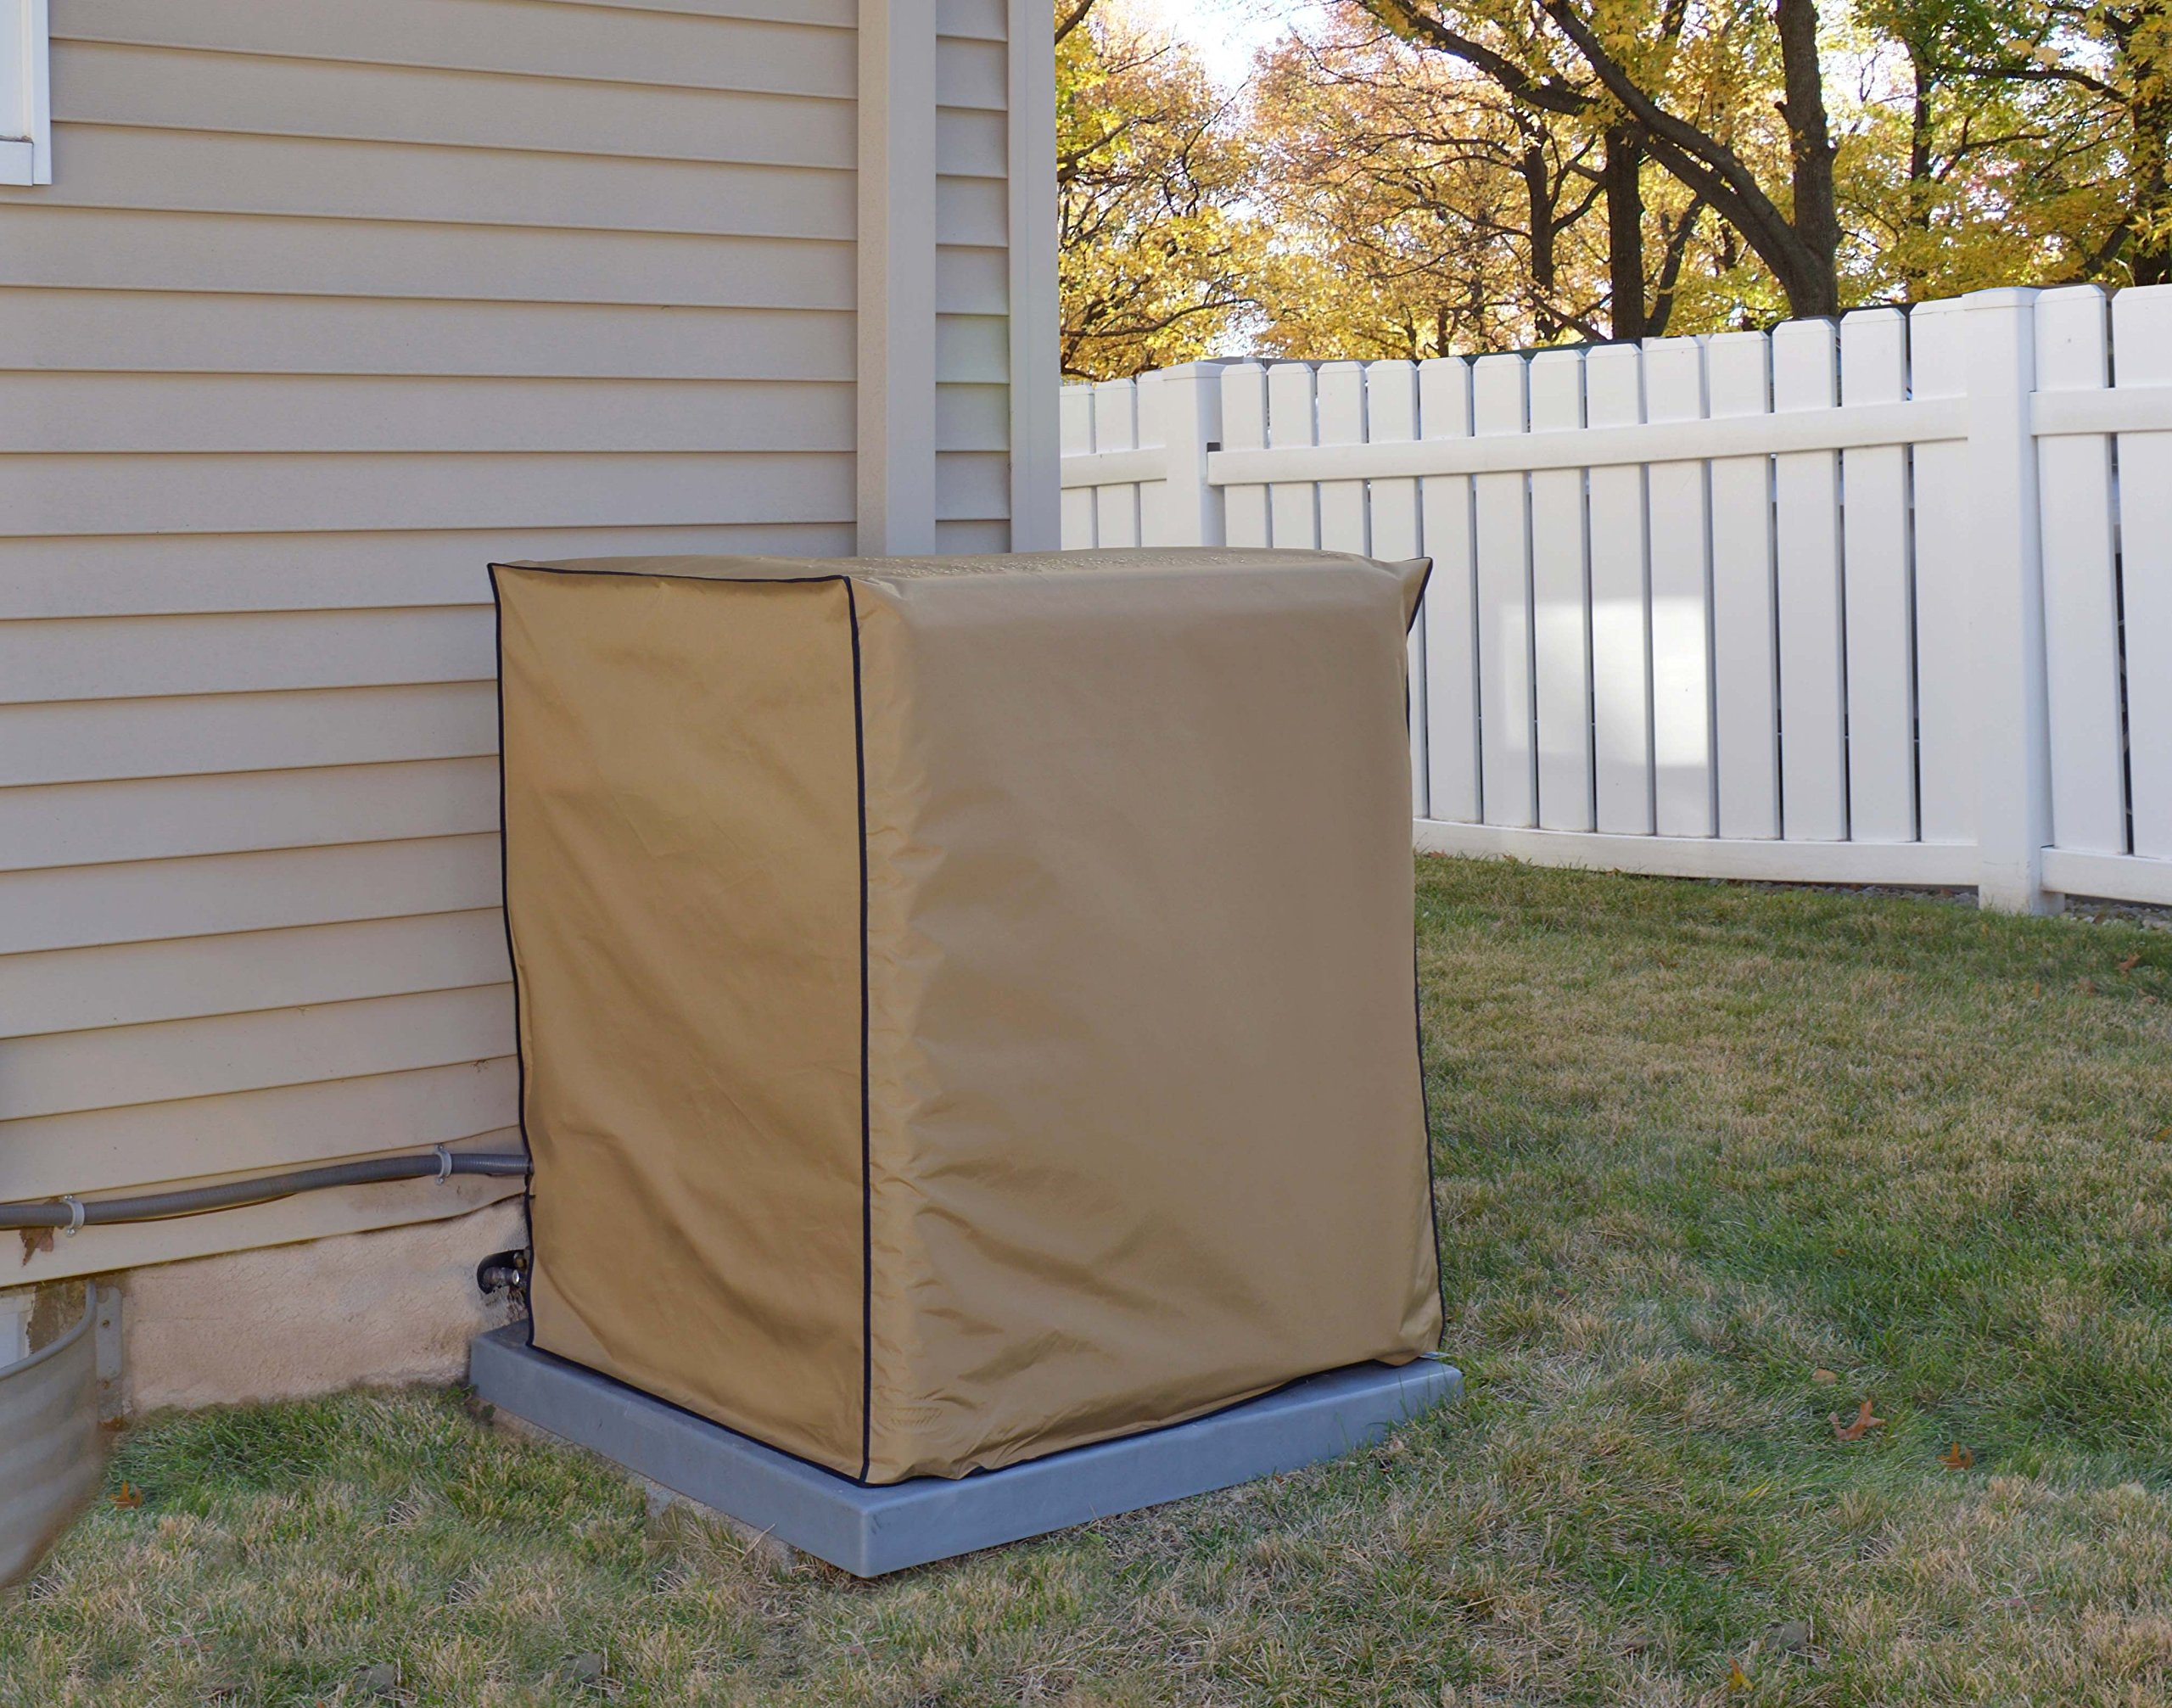 Air Conditioning System Unit GOODMAN MODEL GSX160301 Waterproof Tan Nylon Cover By Comp Bind Technology Dimensions 29''W x 29''D x 35.5''H by Comp Bind Technology